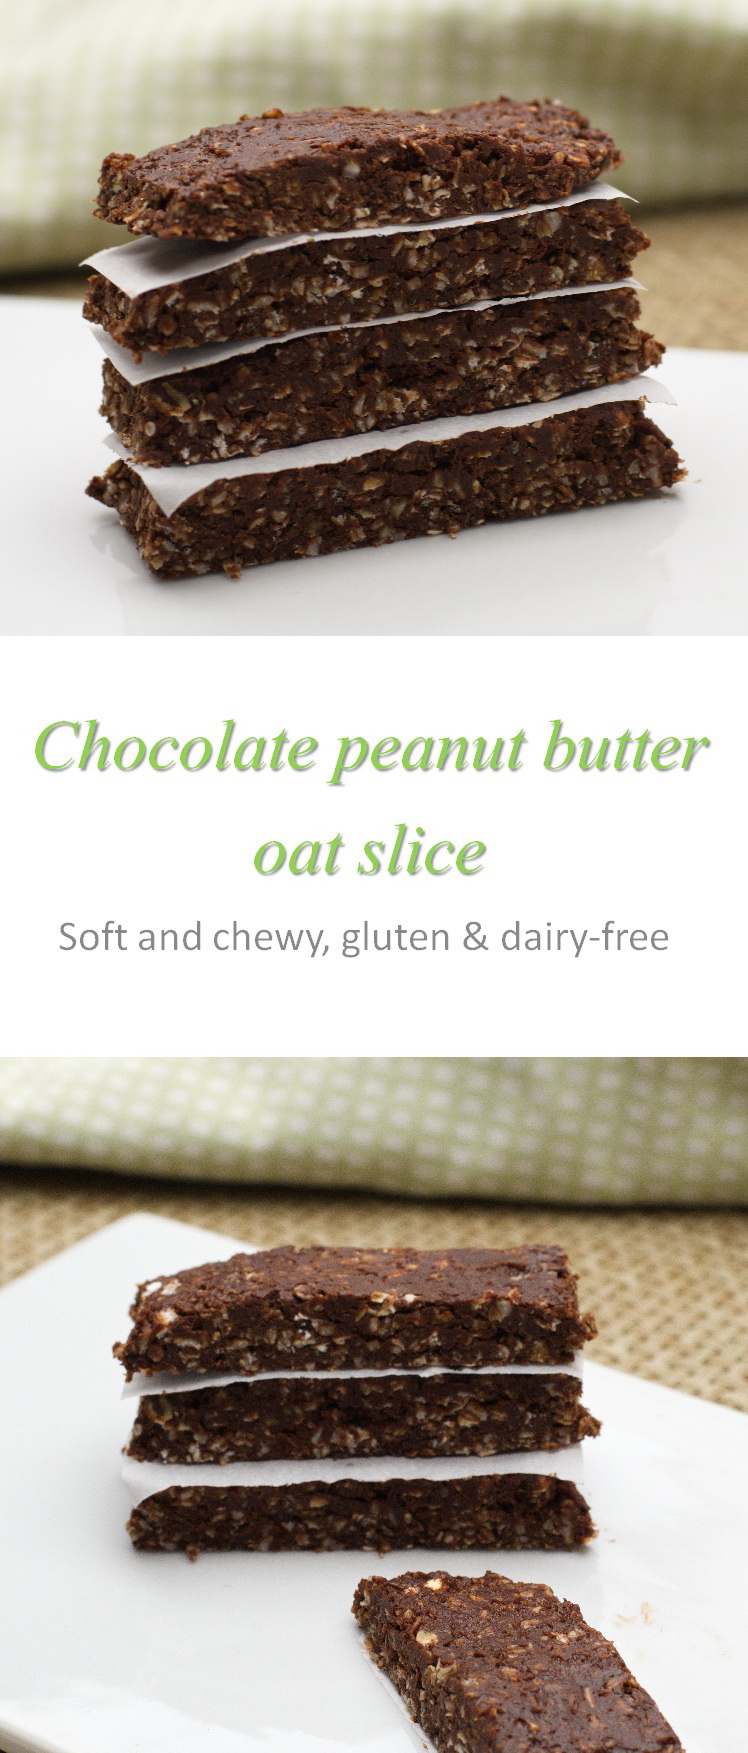 This no-bake chocolate peanut butter oat slice is very more-ish - portion control is required here! #oatslice